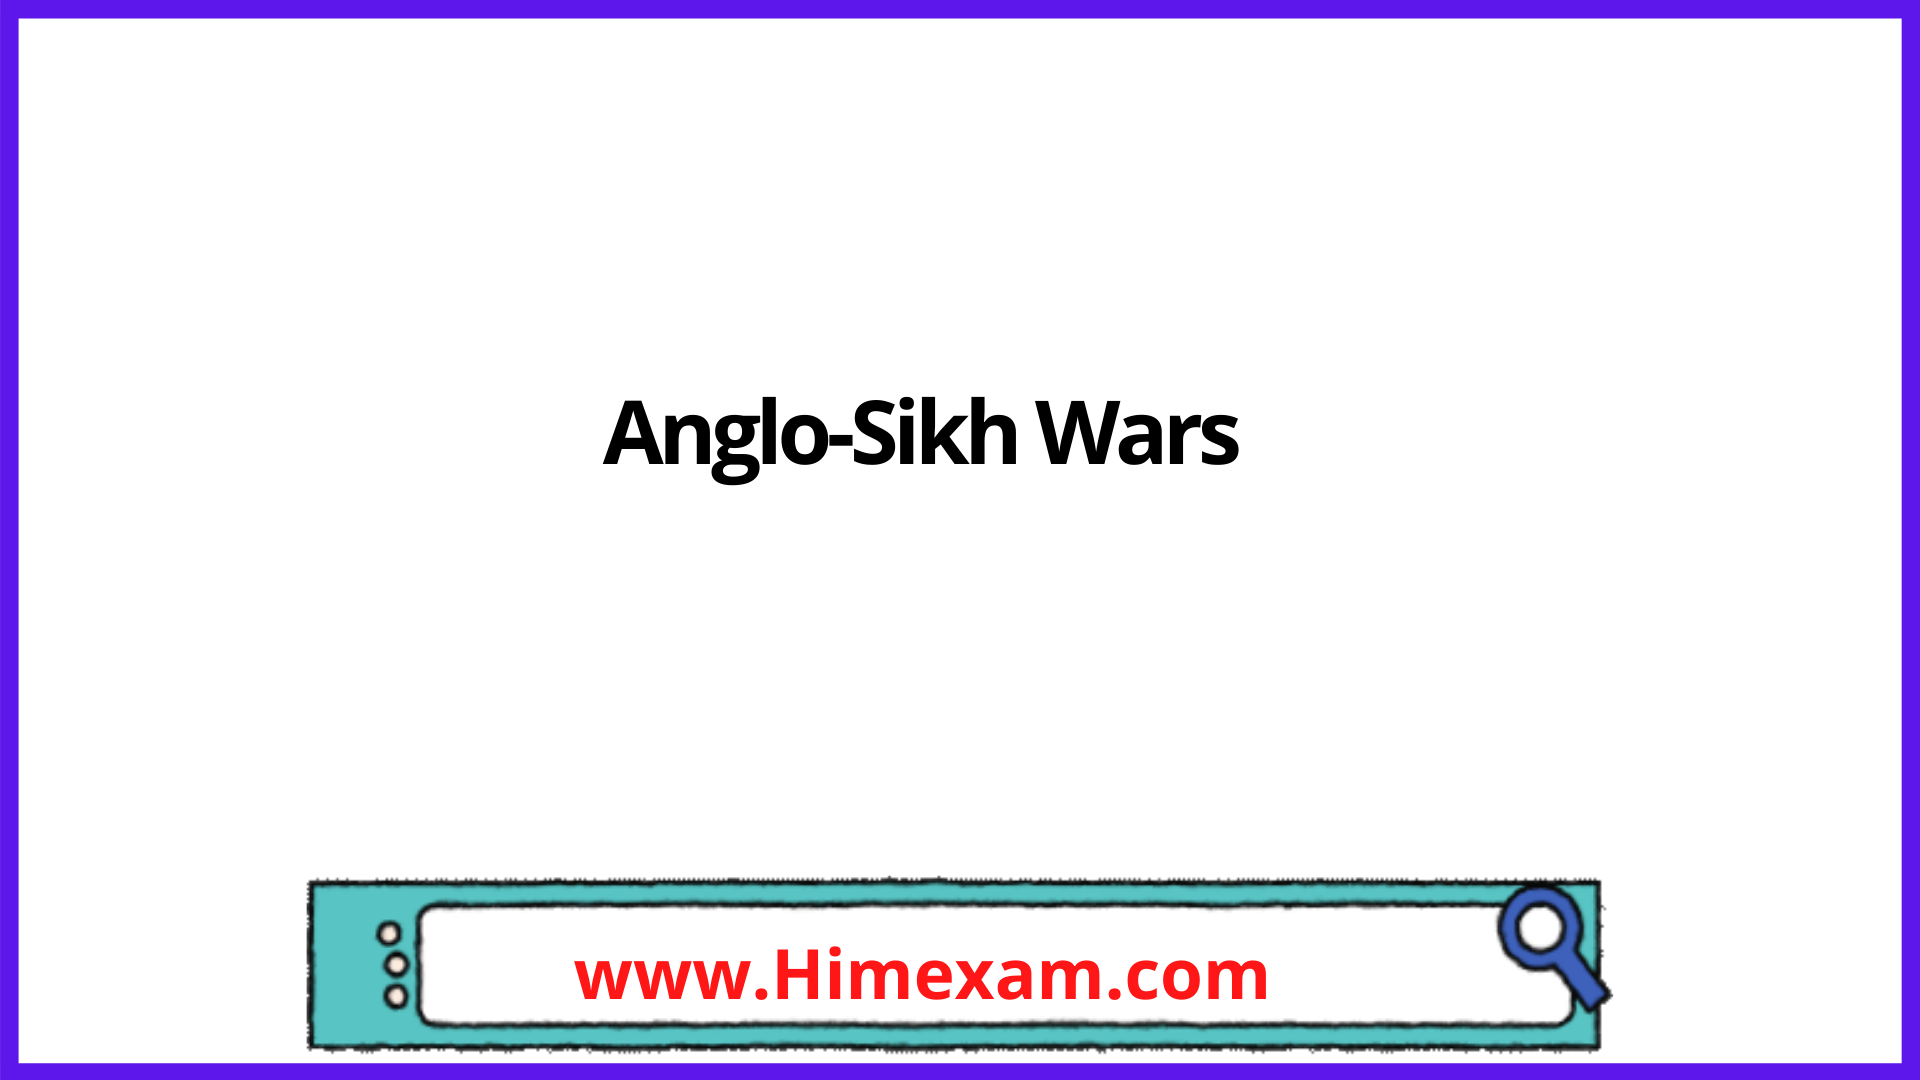 Anglo-Sikh Wars